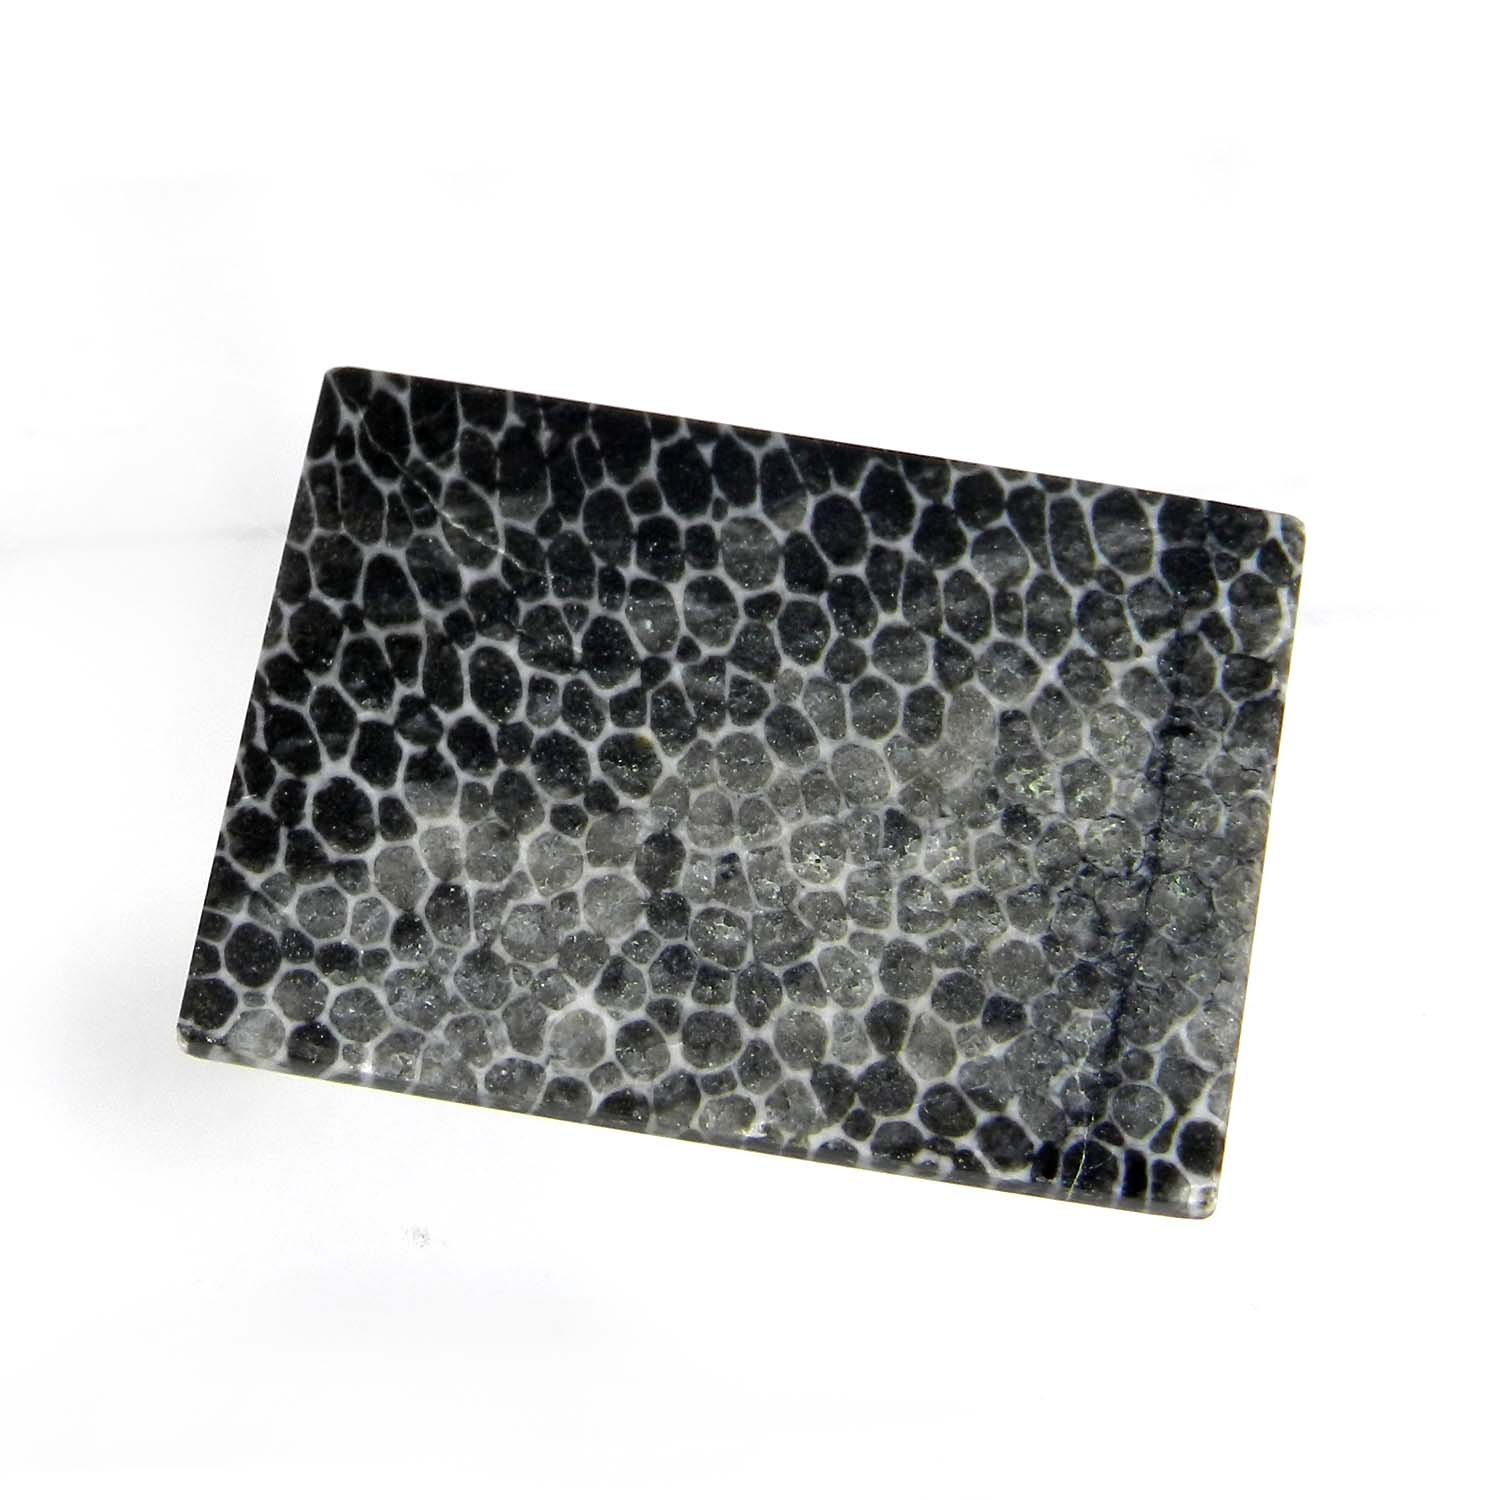 Black Coral 27x20mm Rectangle Cabochon 23.80 Cts